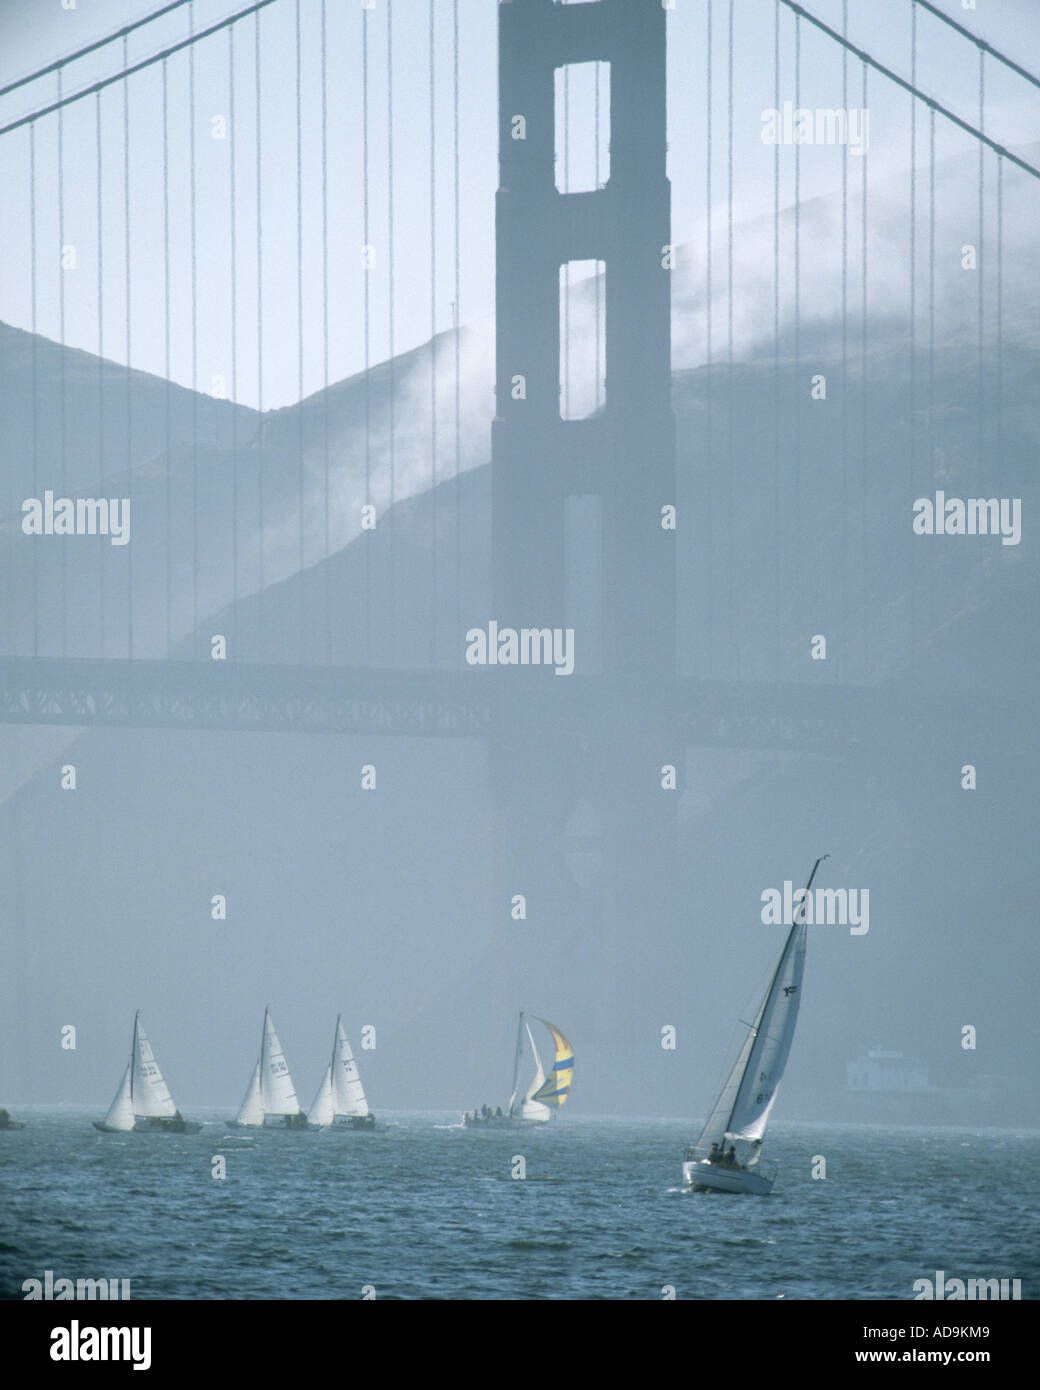 USA - CALIFORNIA:  Sailing under Golden Gate Bridge at San Francisco - Stock Image